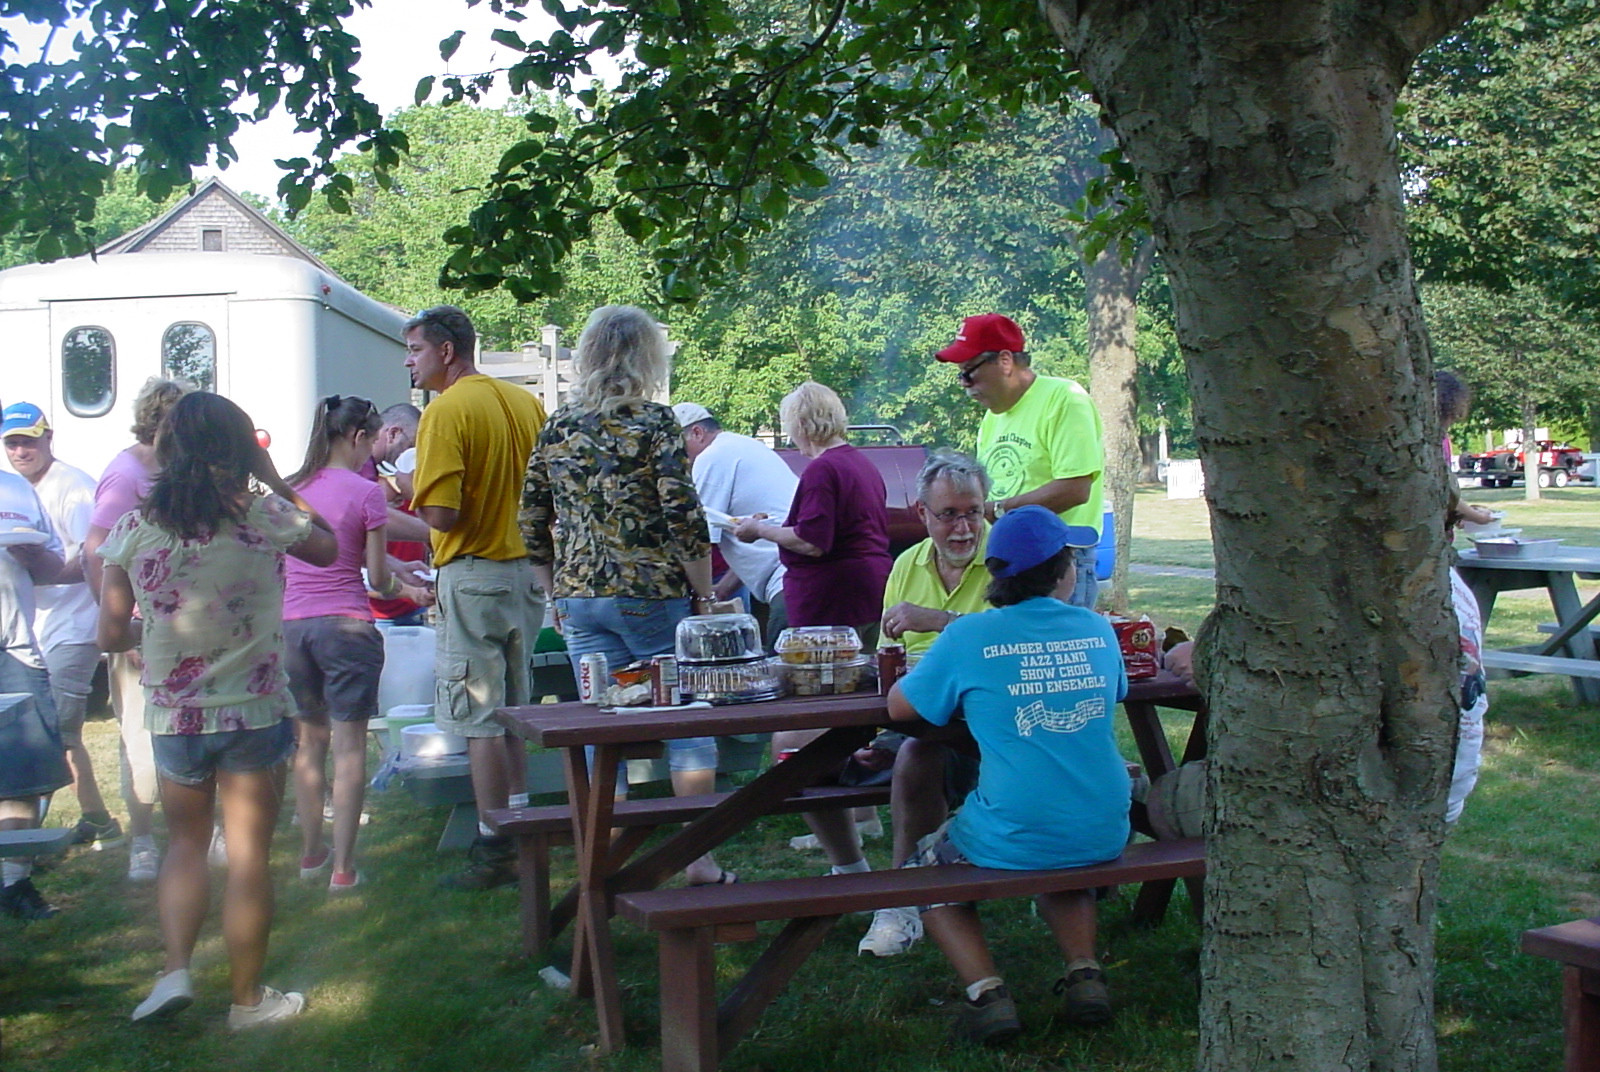 Lining up for food at the family barbecue